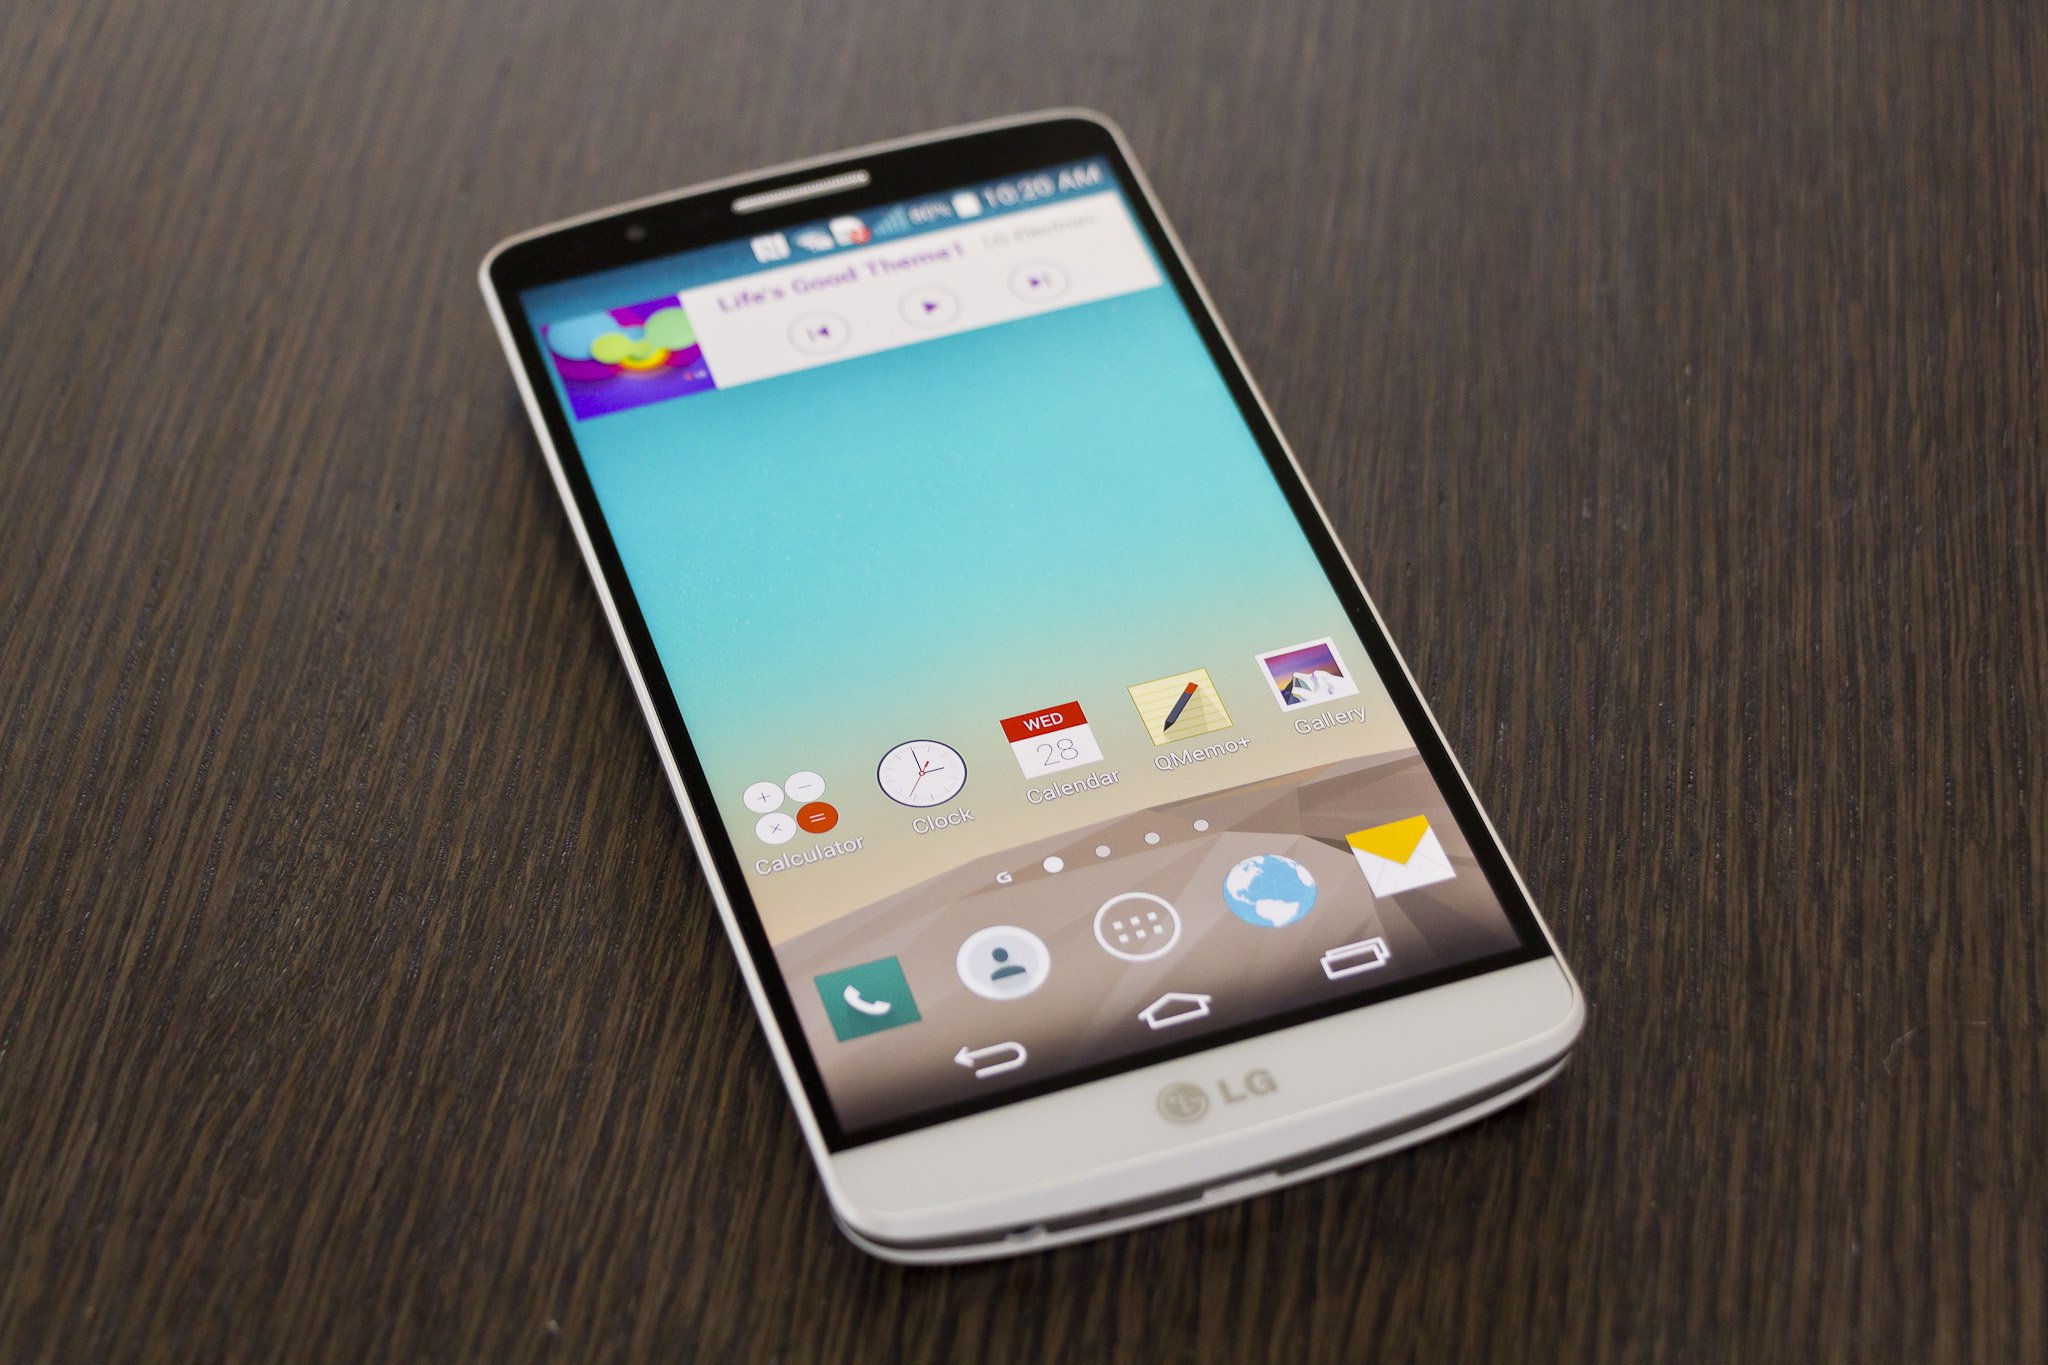 Millions Of LG G3 Smartphones Users Affected By 'SNAP' Vulnerability